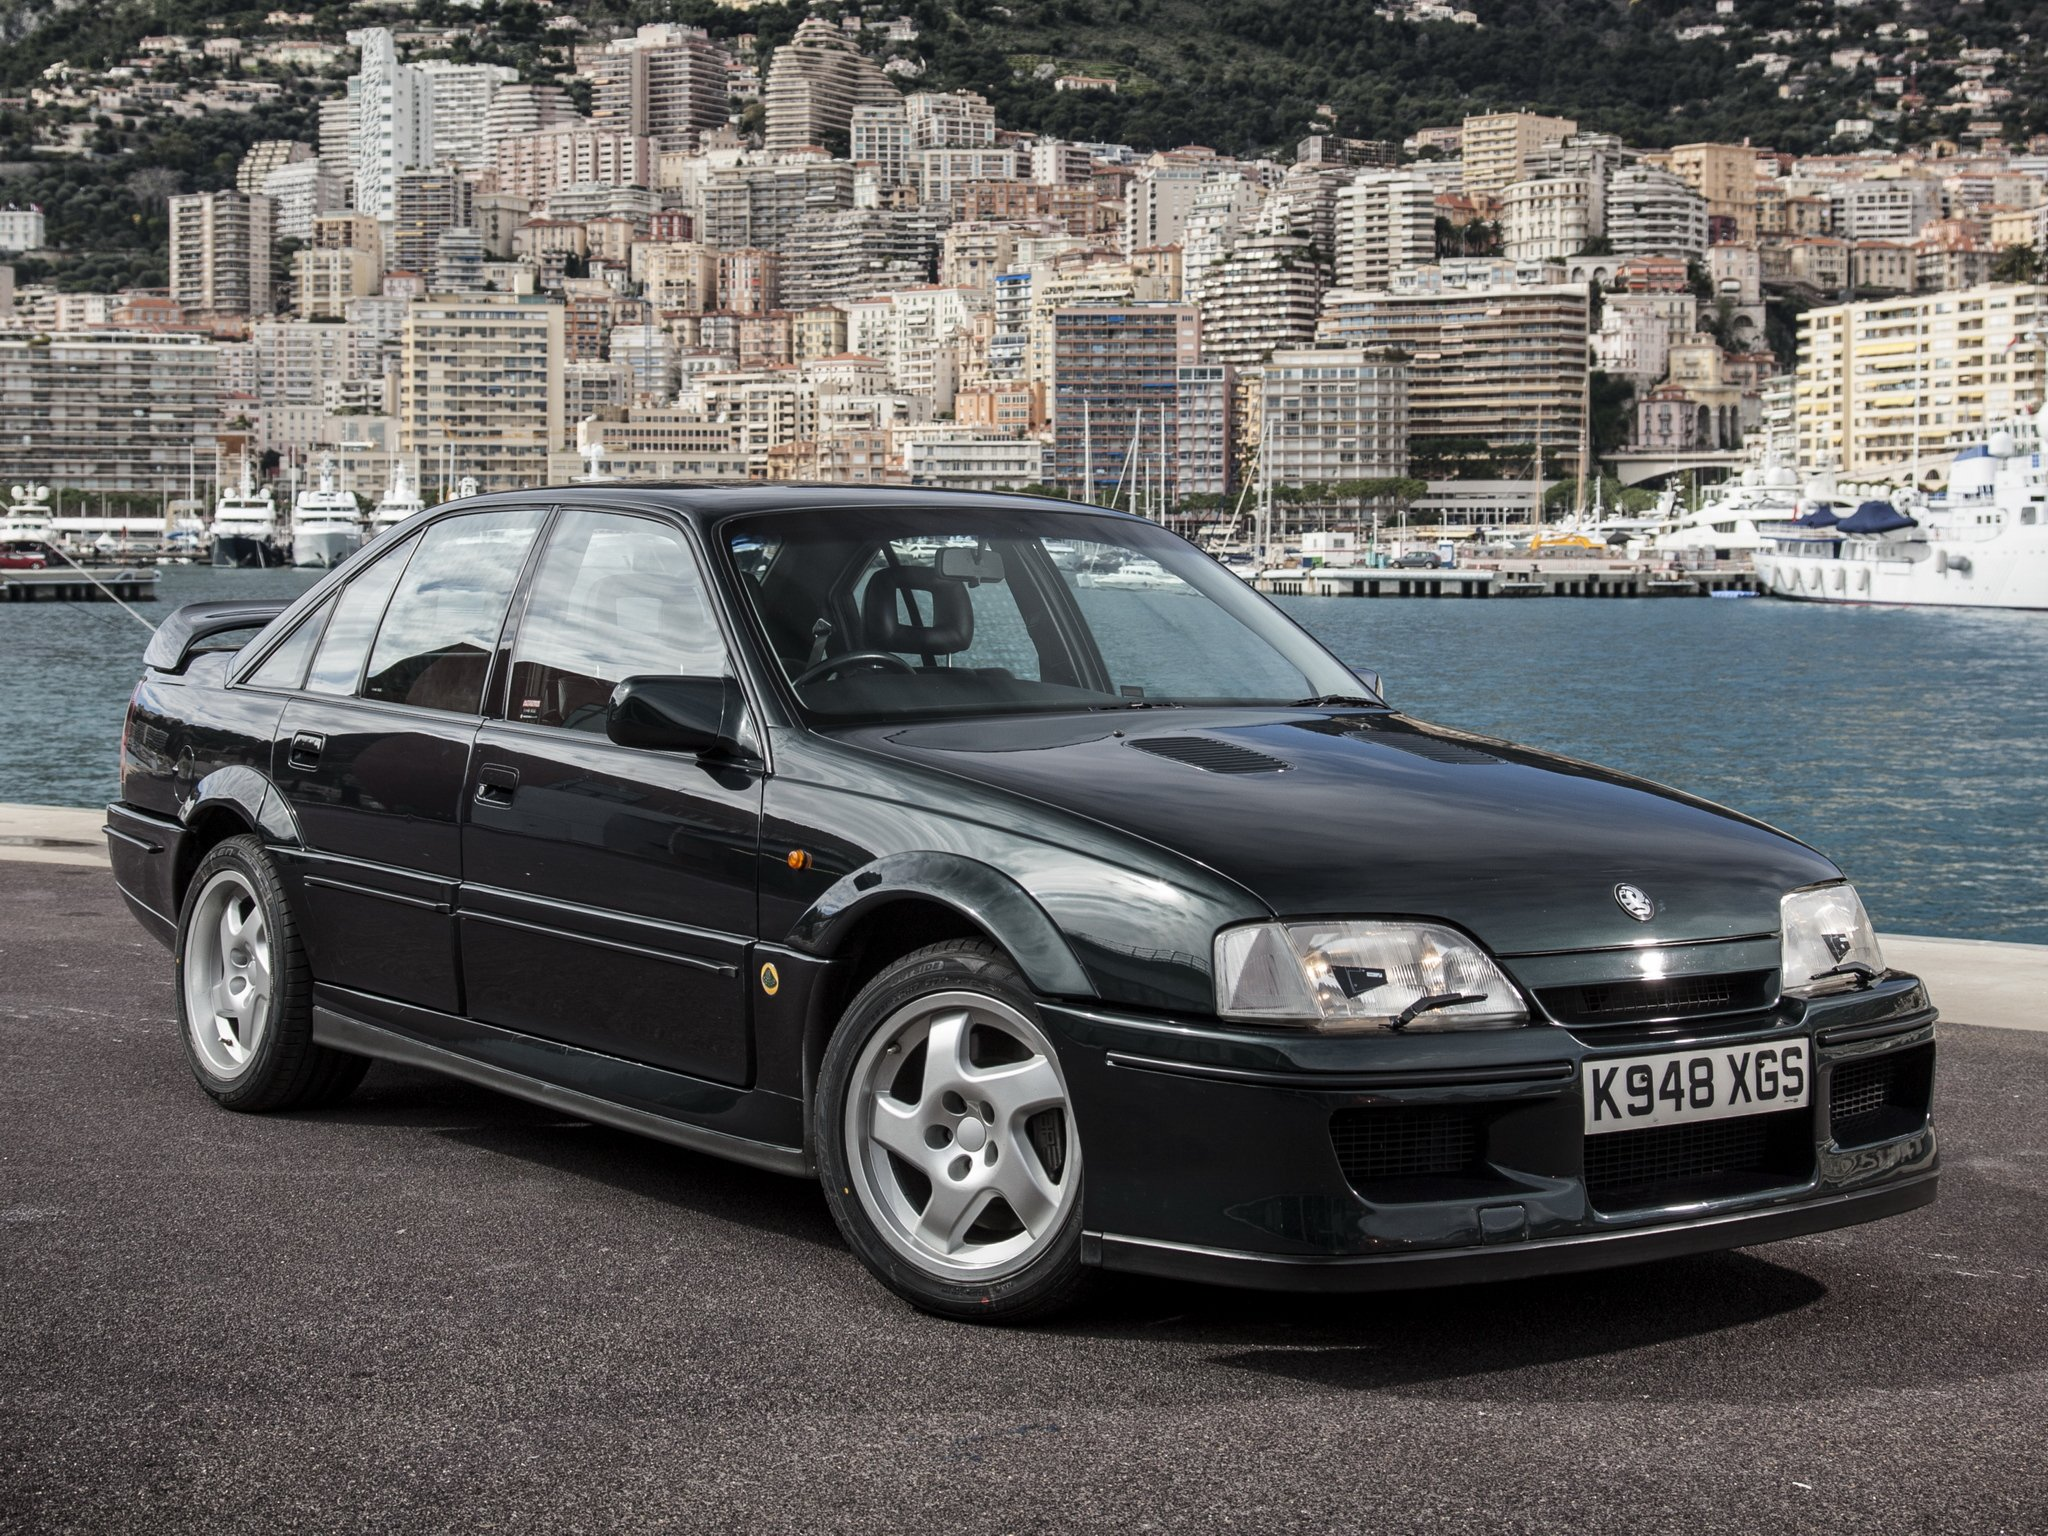 1990 92 vauxhall lotus carlton f wallpaper 2048x1536 298266 wallpaperup. Black Bedroom Furniture Sets. Home Design Ideas